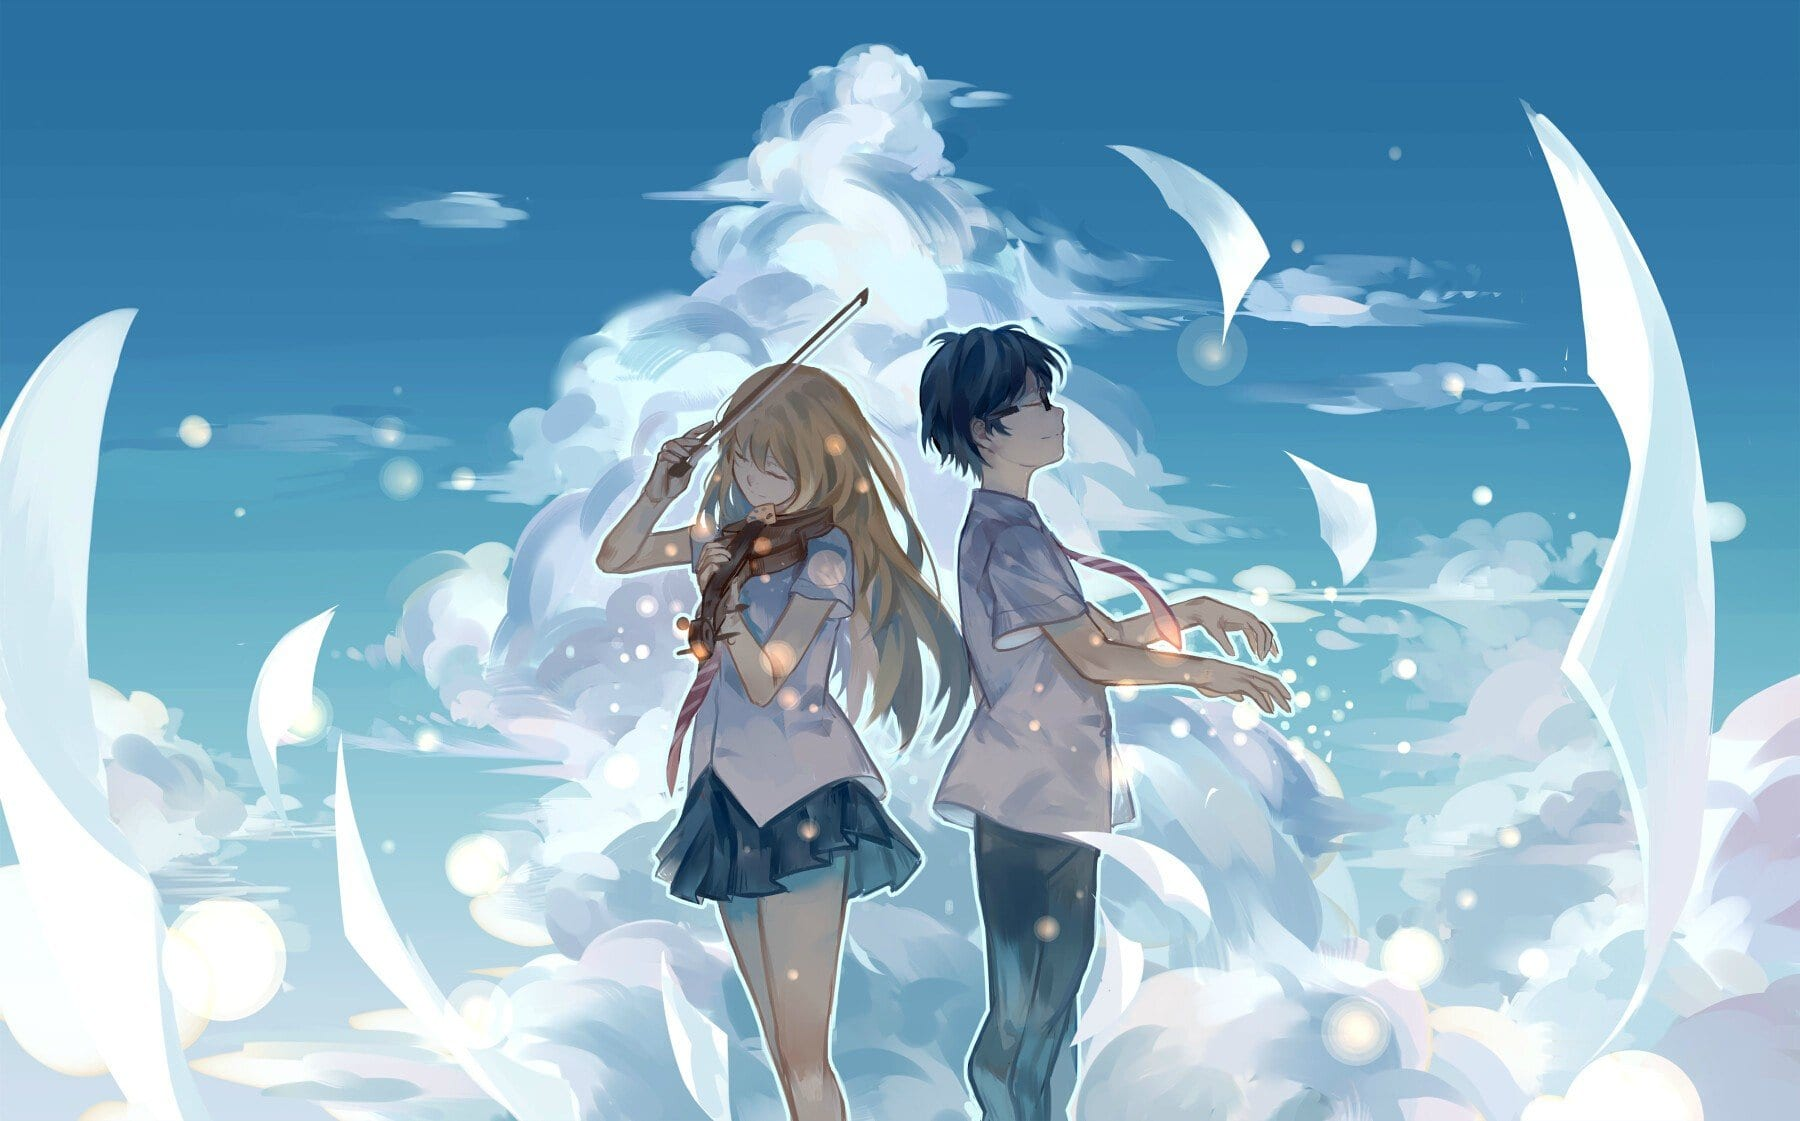 Your Lie in April main characters posed in clouds practicing music